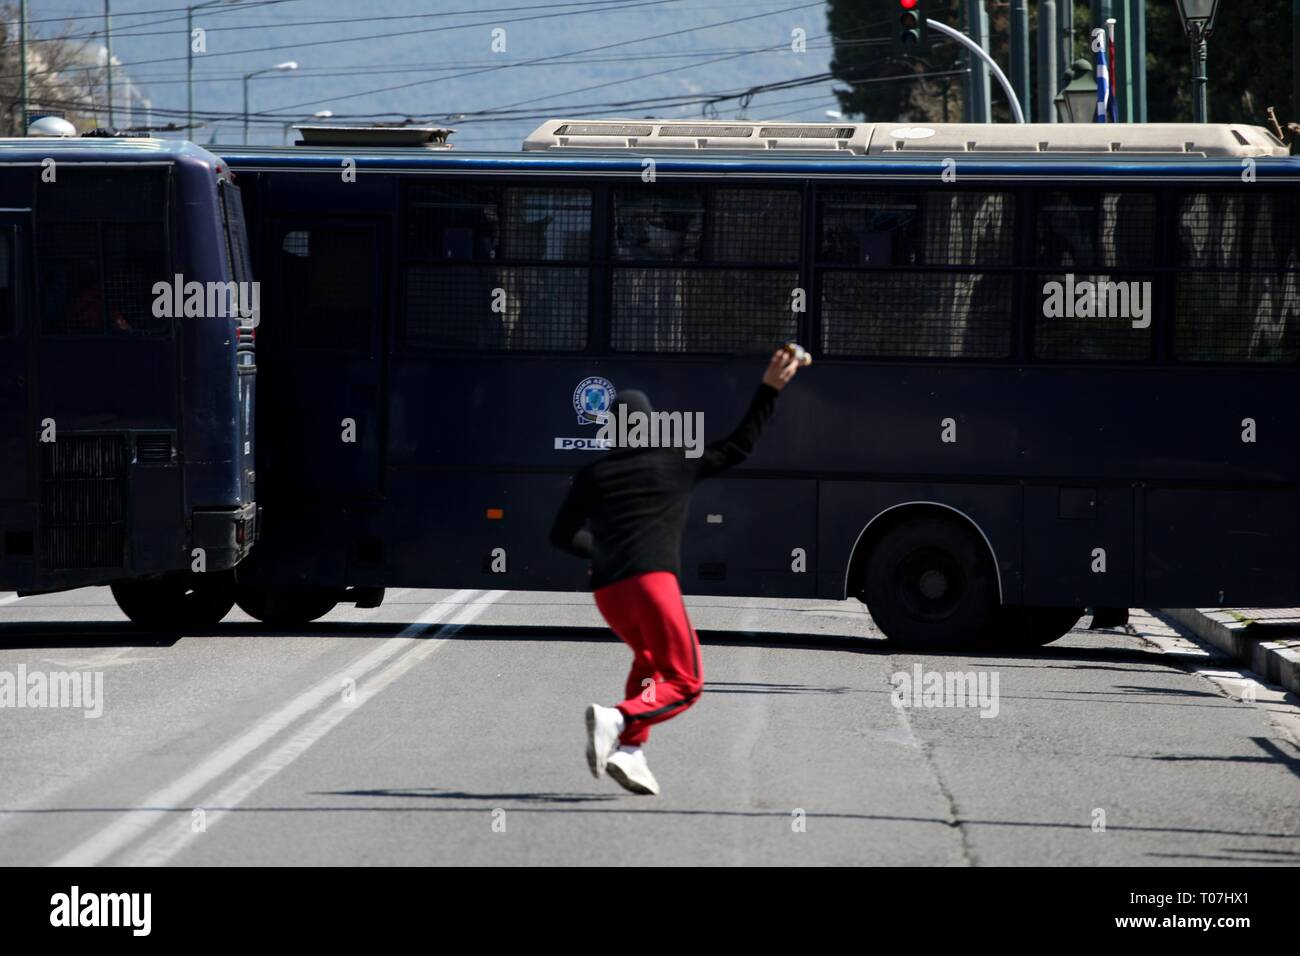 Athens, Greece. 18th Mar, 2019. High-school students throw petrol bombs against riot police during protest in the center of Athens. (Credit Image: © Aristidis VafeiadakisZUMA Wire) Credit: ZUMA Press, Inc./Alamy Live News - Stock Image